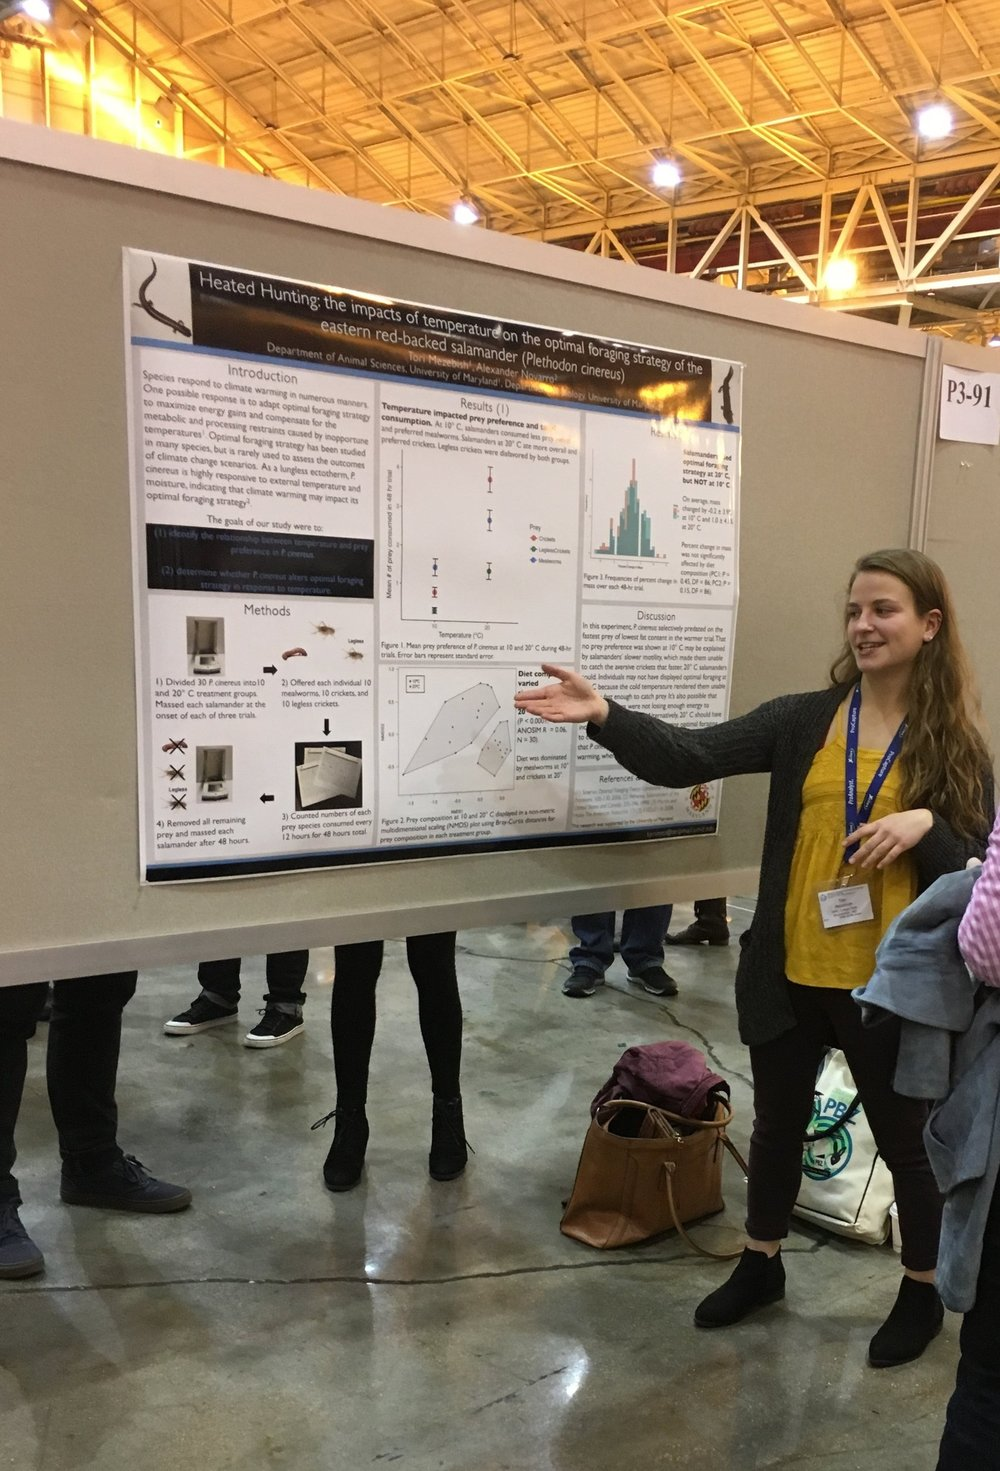 Tori Mezebish   I met Tori in 2015, as an undergraduate at the University of Maryland, and she's been a critical part of several lab projects. Tori completed an independent project measuring salamander diet at different temperatures in the lab and presented her results at SICB in 2017. She also took the lead on a  paper  investigating  climbing behavior  in response to community composition in  Plethodon  communities, and is a co-author on a study comparing  stress hormones  and performance at different temperatures in salamanders from a latitudinal population gradient. Tori graduated in 2017 and is working towards a master's degree in the Warnell School of Forestry and Natural Resources at UGA.